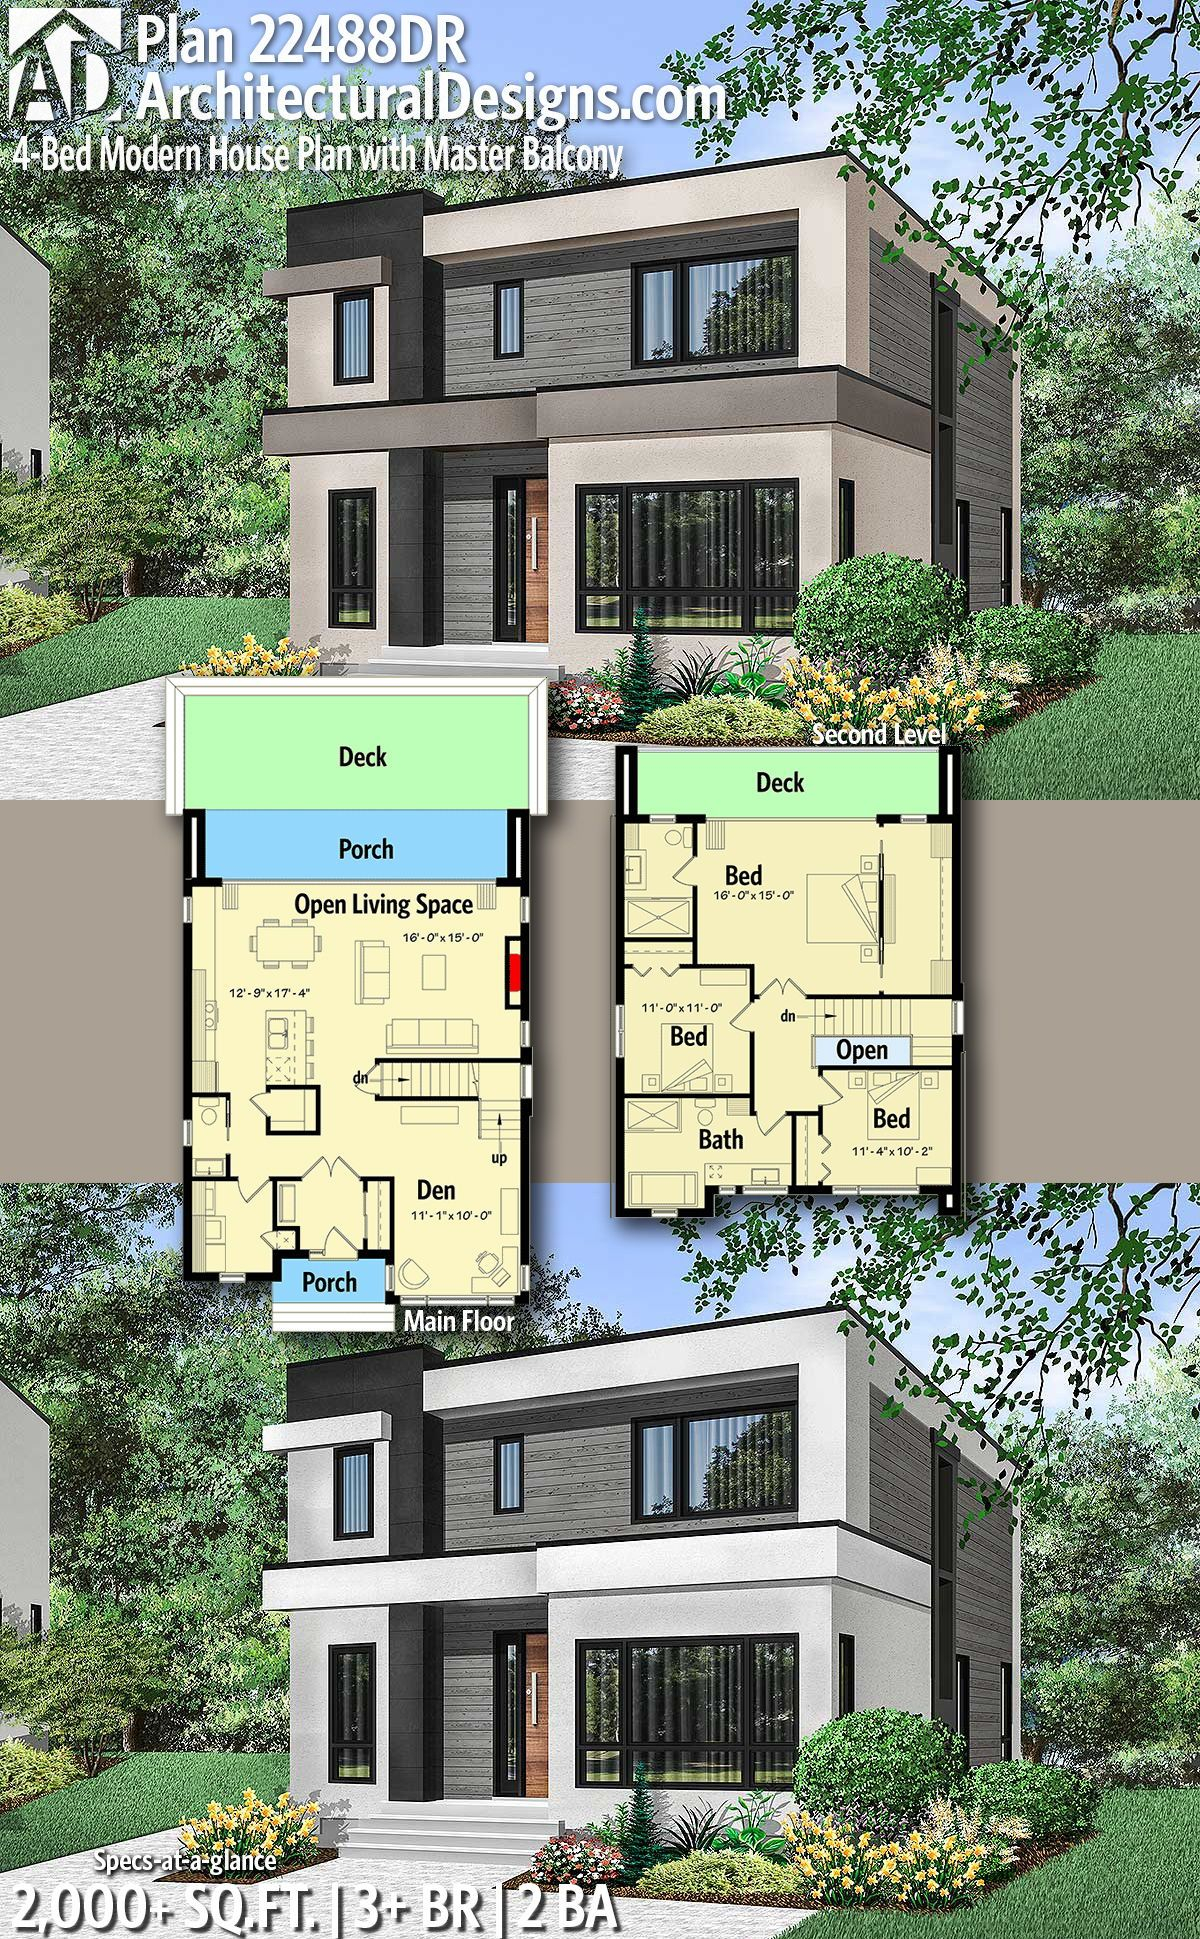 Plan 22488dr 4 Bed Modern House Plan With Master Balcony in 3 Bedroom Modern House Design